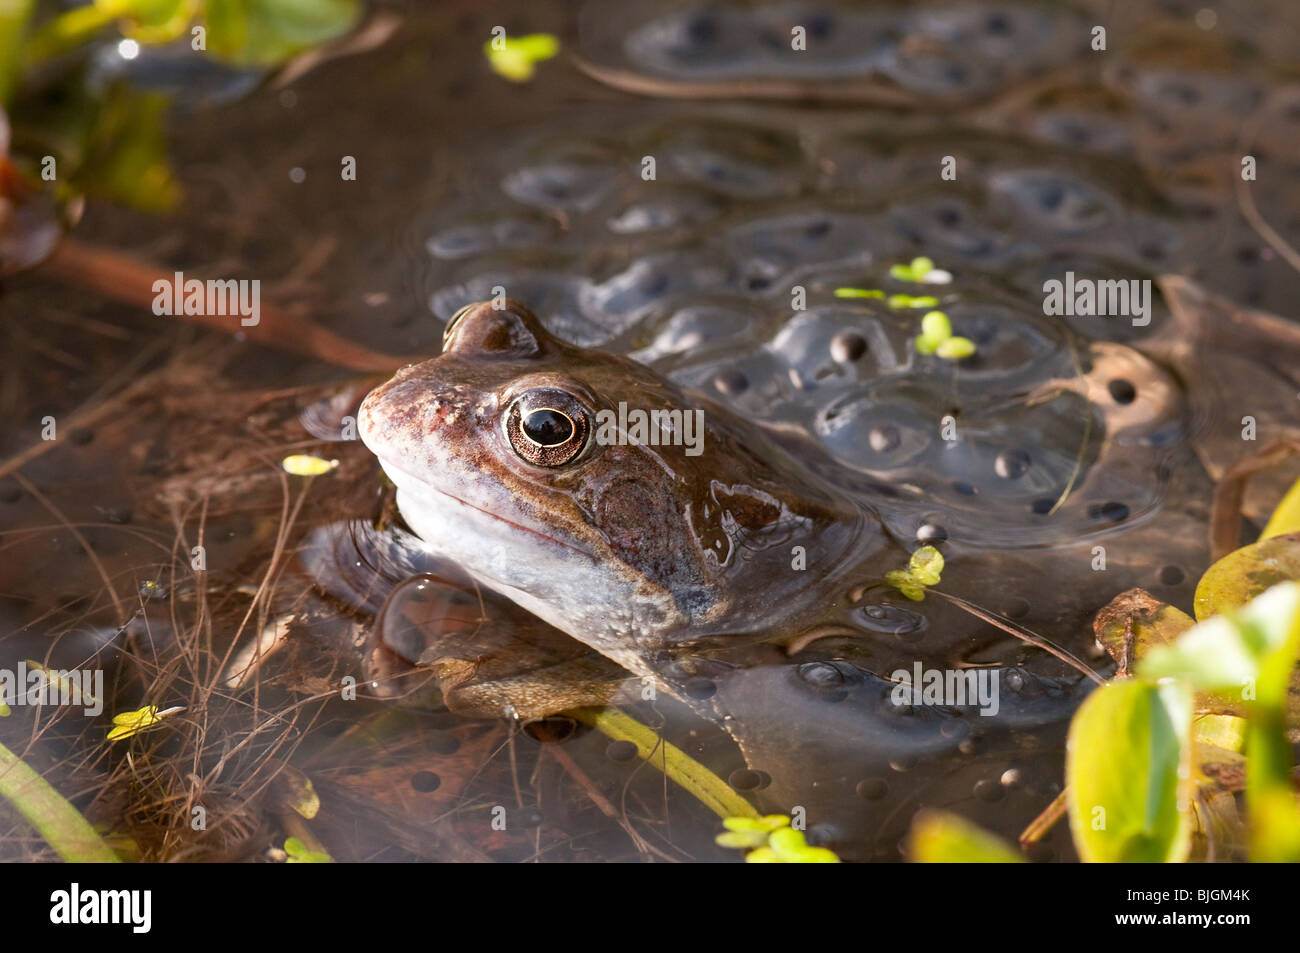 Common Frog in a Garden Pond in Hampshire Surrounded with Spawn - Stock Image